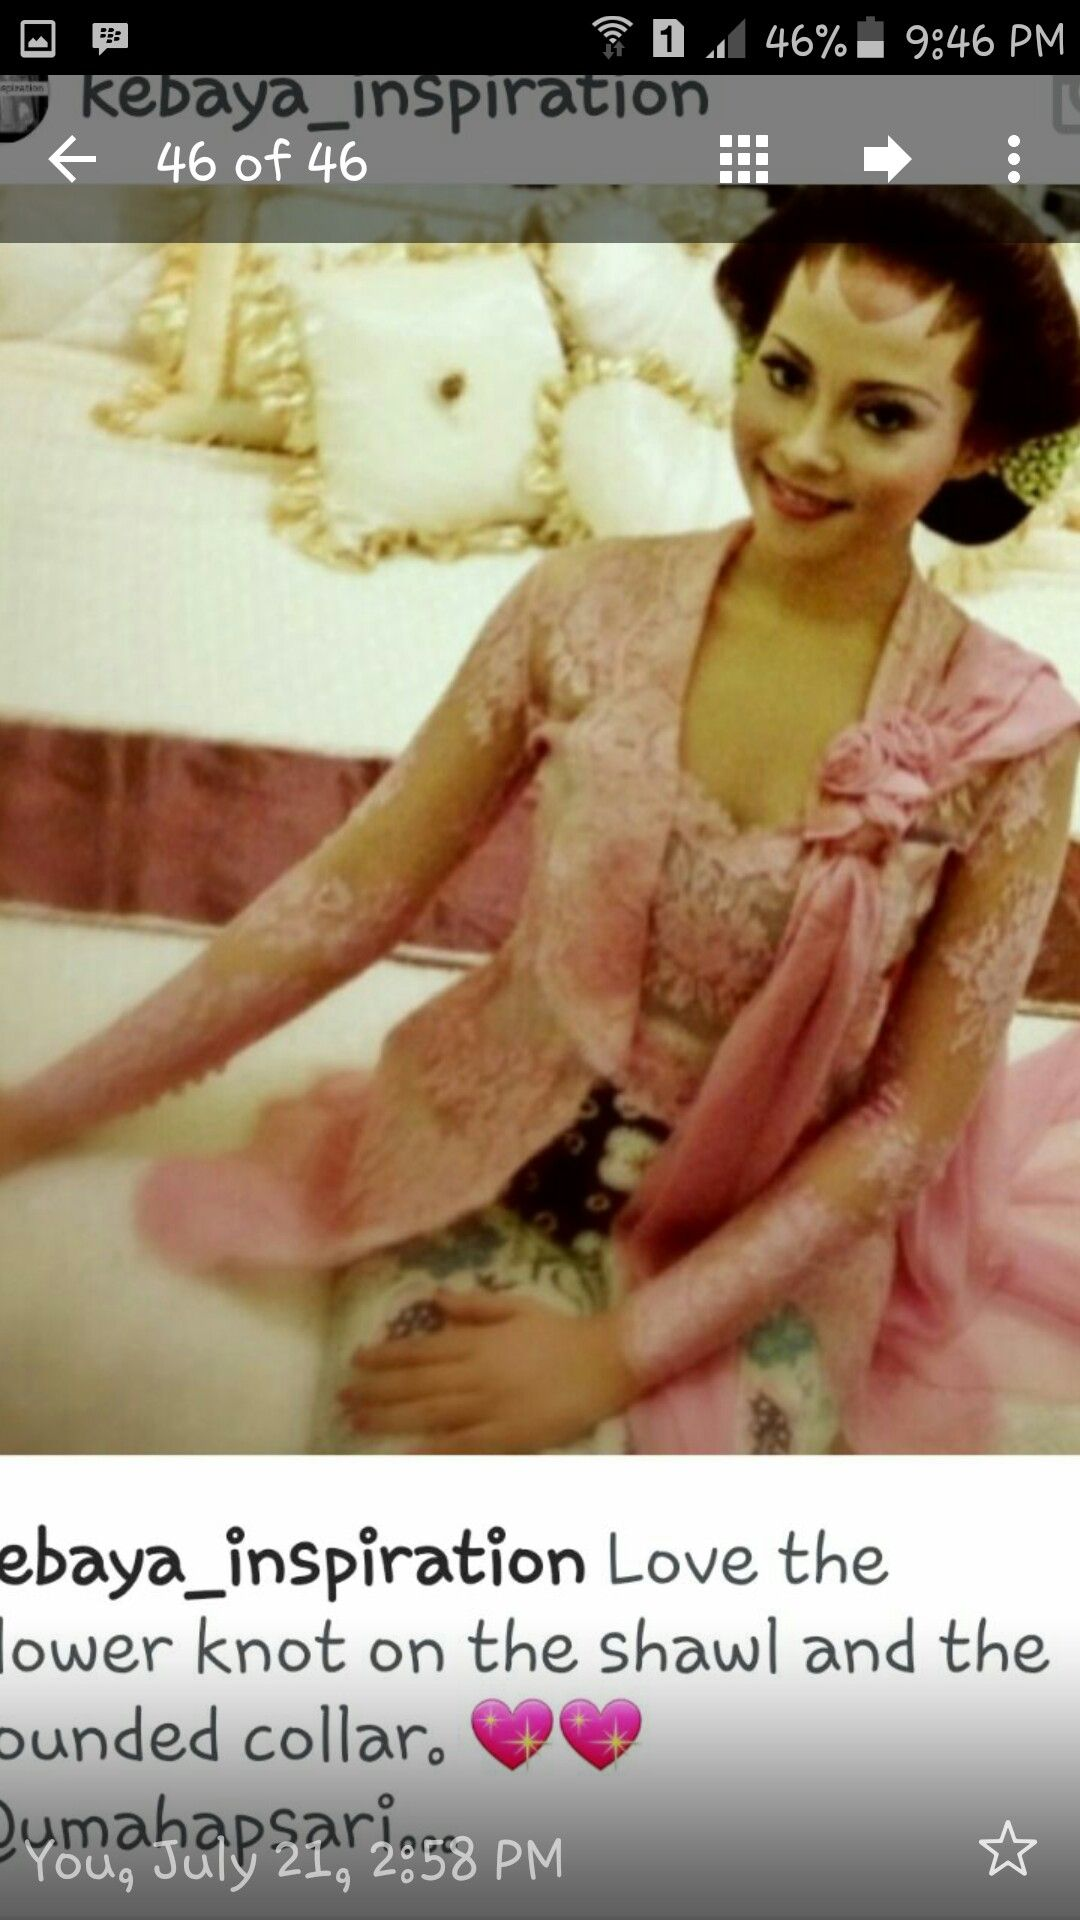 Find this Pin and more on Kebaya by mbunita